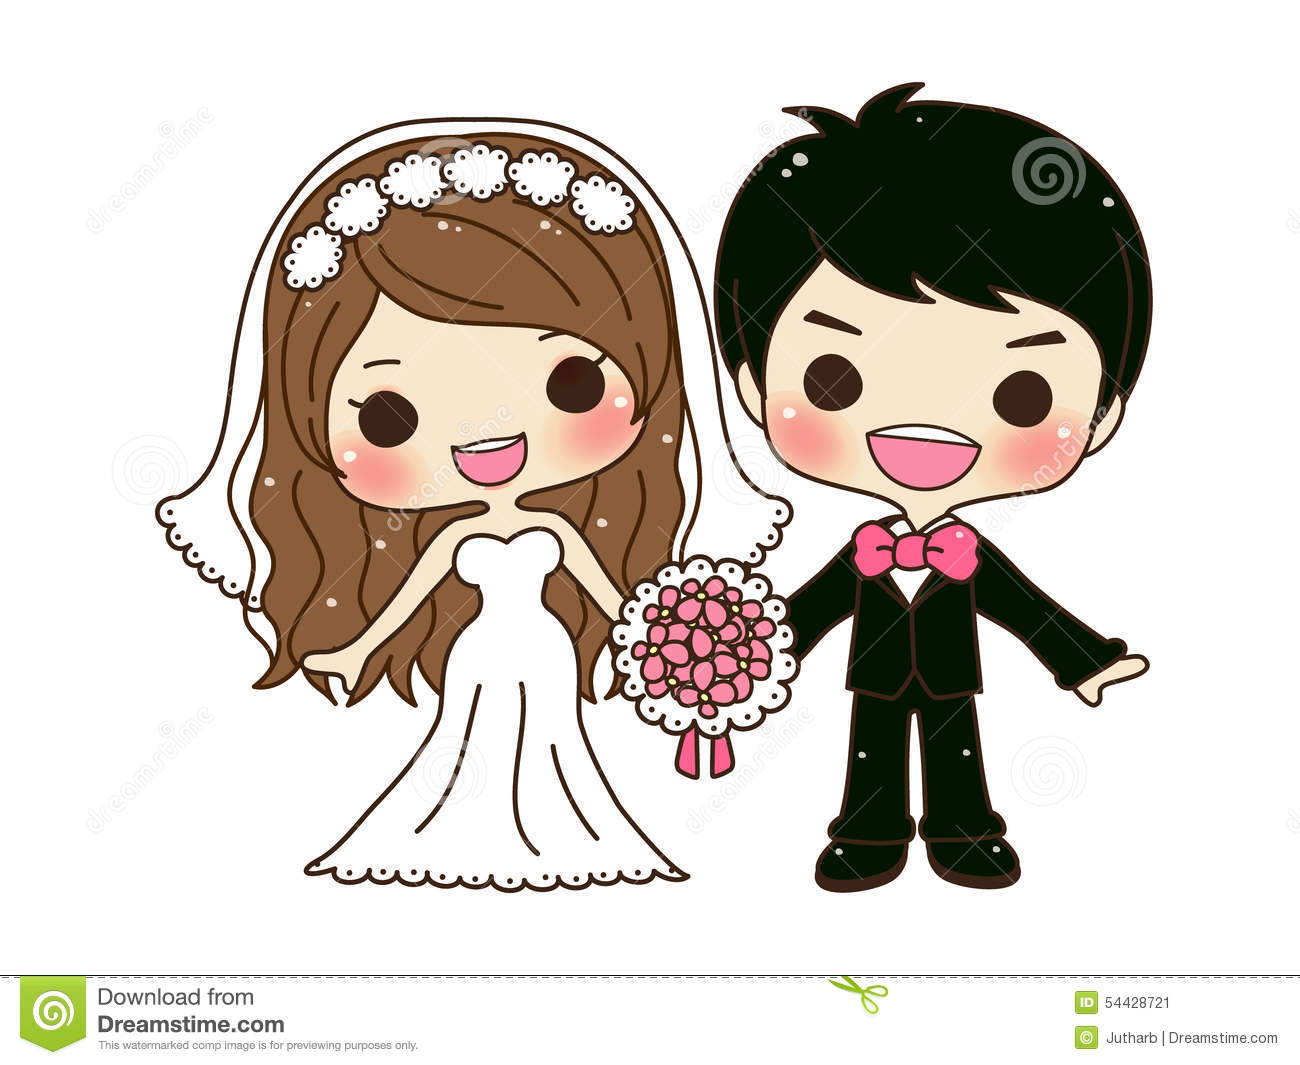 Married couples Stock Photos and Images 121,501 Married